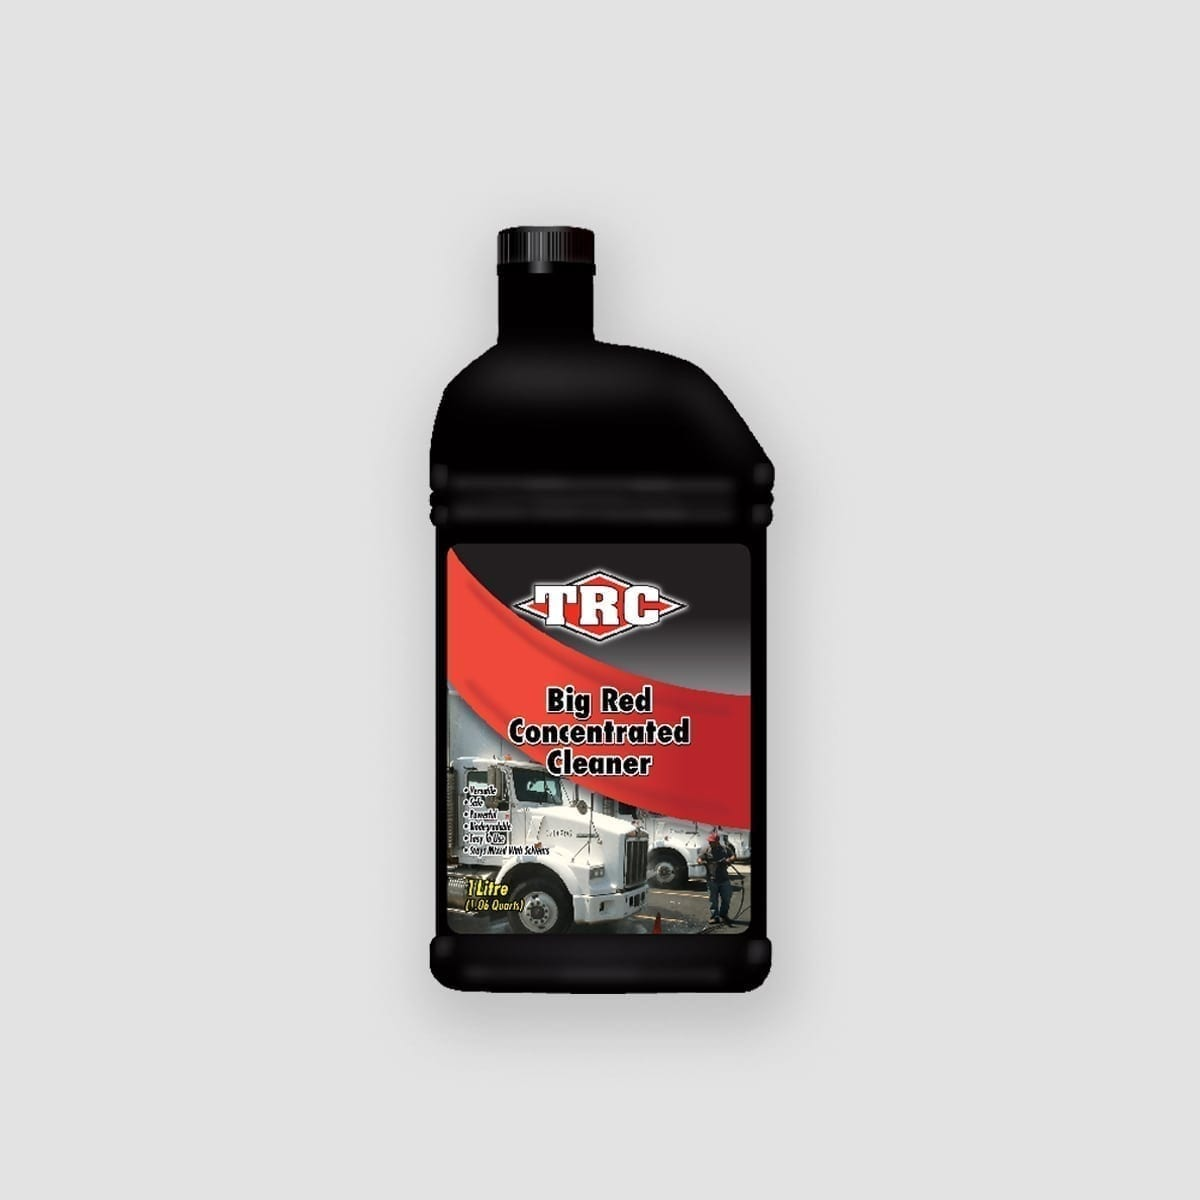 trc-big-red-concentrated-cleaner-04-french